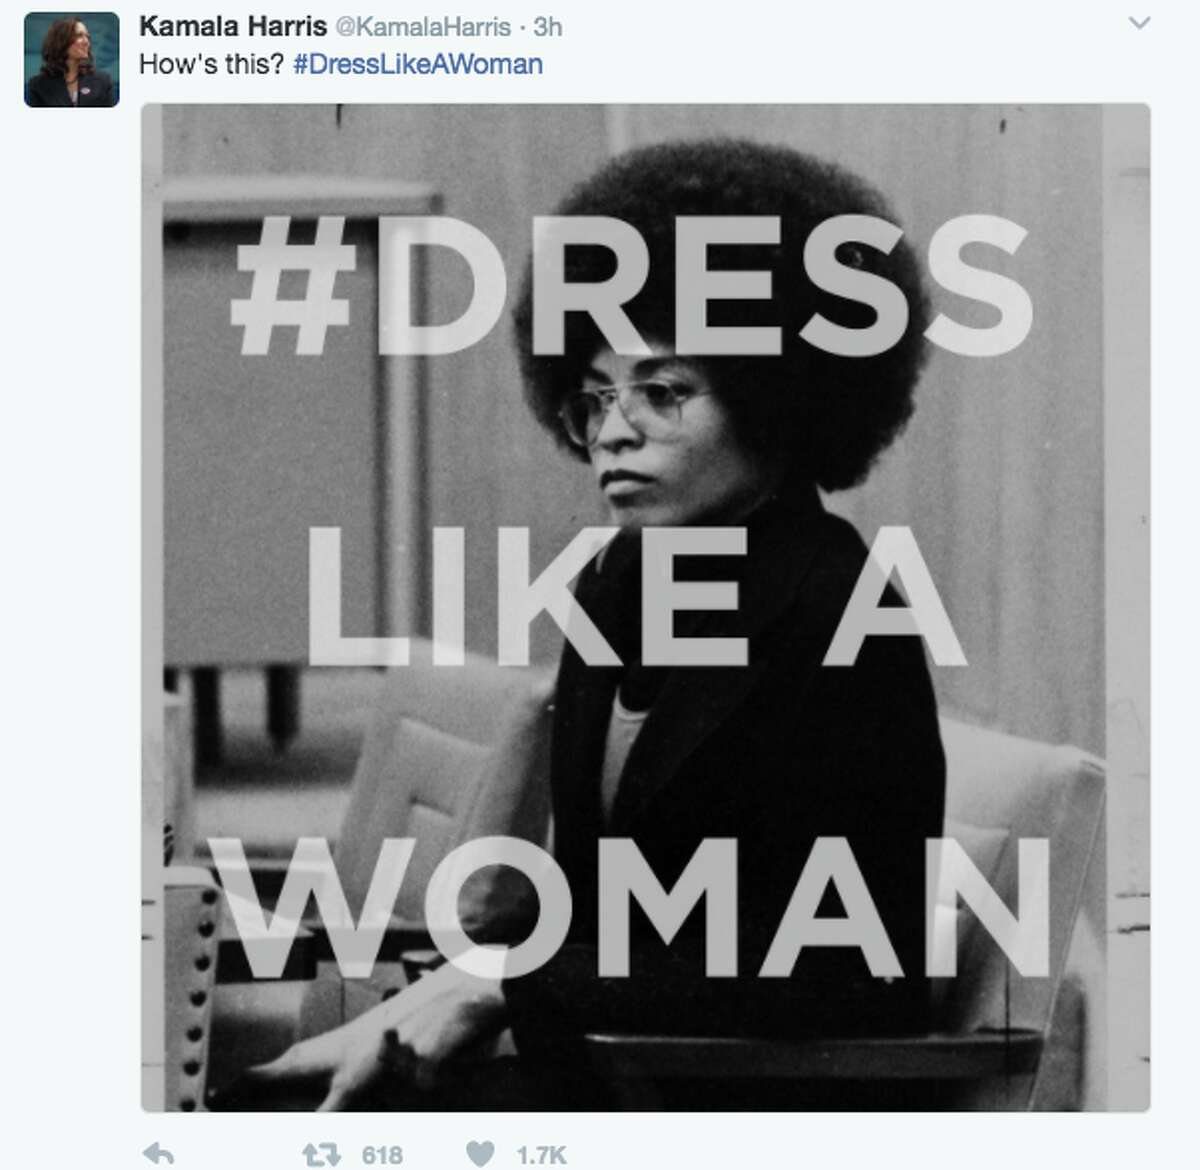 After news broke out that President Trump wanted his female staffers to 'dress like women,' many woman responded by tweeting photos of what real women dress like at work. The photos included women in hijabs, scrubs, hockey uniforms, spacesuits, and judge robes. Senator Kamala Harris got in on the action and tweeted several photos under the hashtag #dresslikeawoman. Here she tweeted an image of political activist Angela Davis.